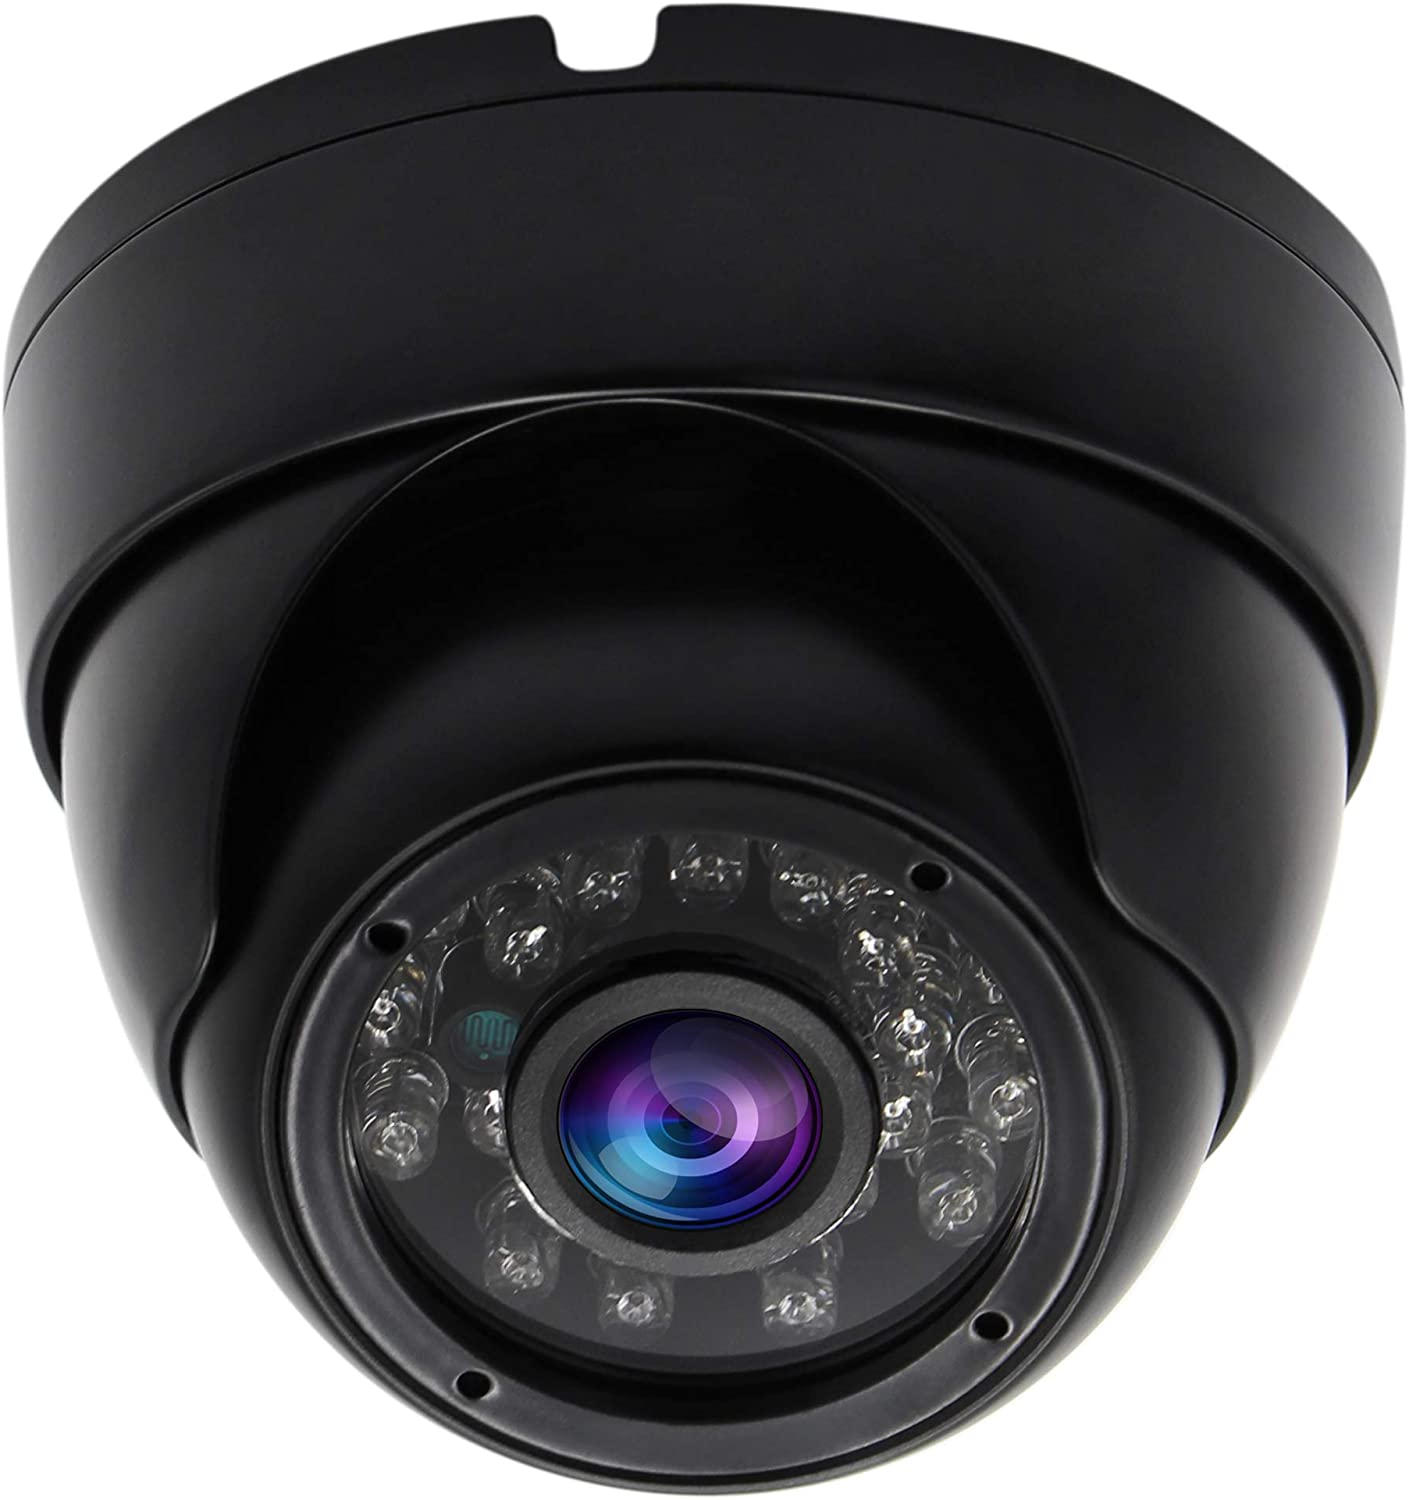 Dome Camera 1 Megapixel USB Webcam with CMOS OV9712 Image Sensor Waterproof Indoor Outdoor Web Camera,USB with Cameras with Microphone UVC for Use in Android Linux Windows Mac Raspberry Pi,Plug&Play